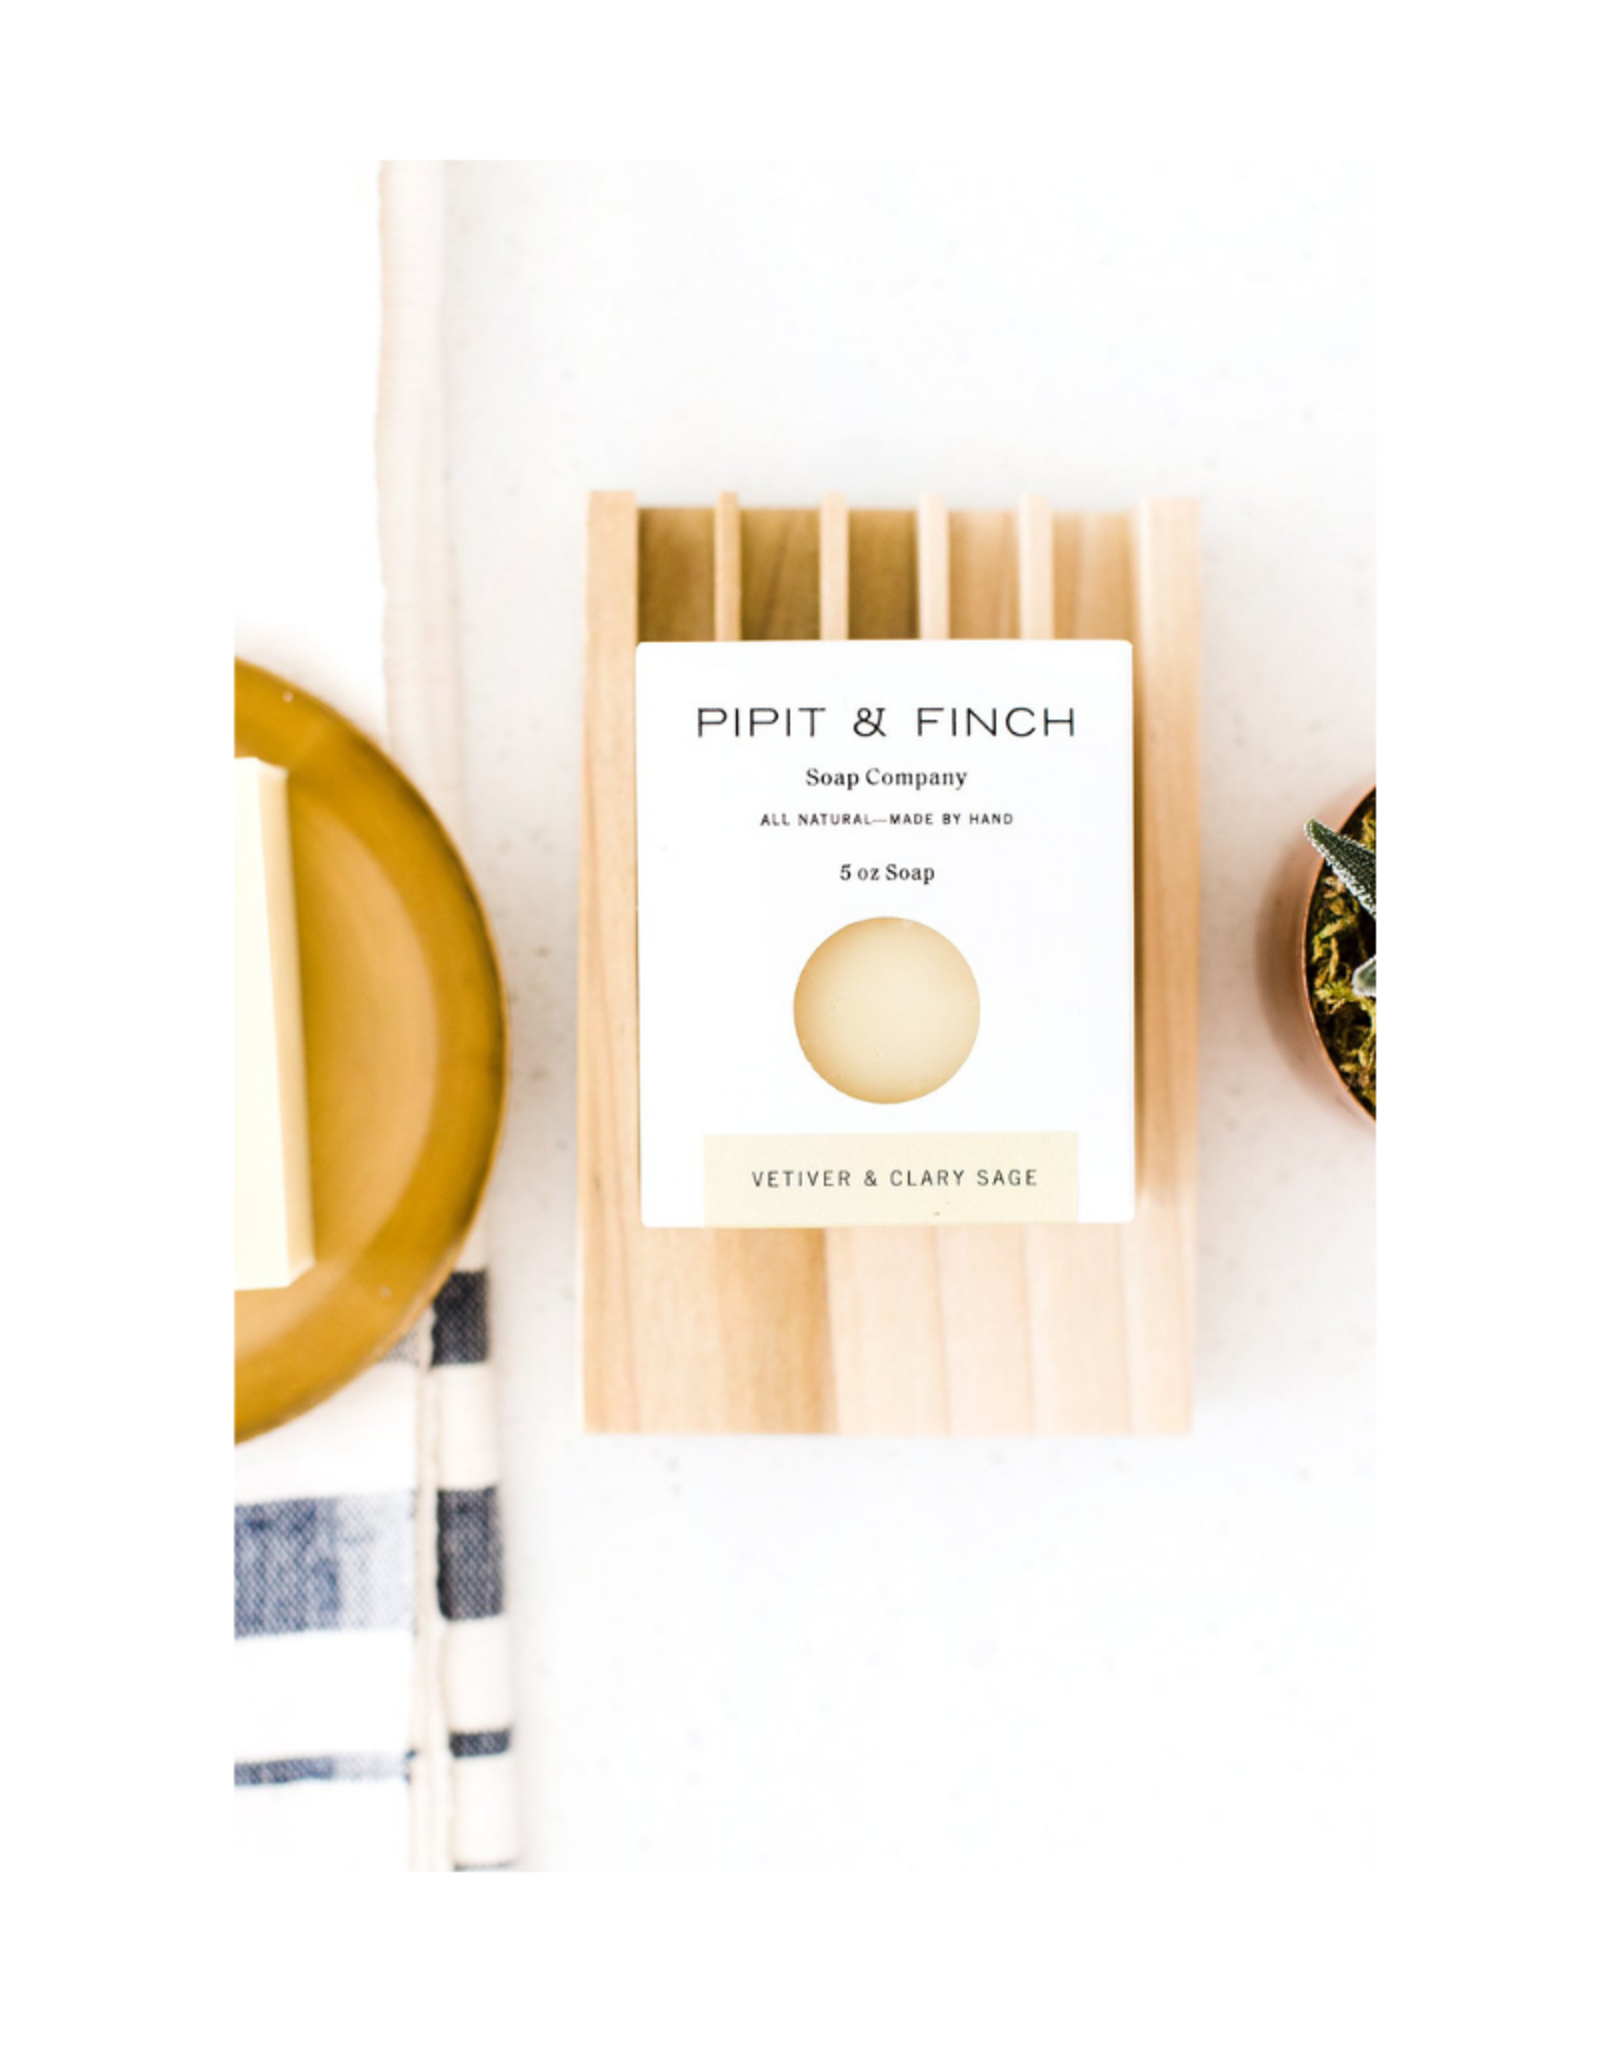 Pipit & Finch Pipit & Finch Vetiver & Clary Sage Soap Bar